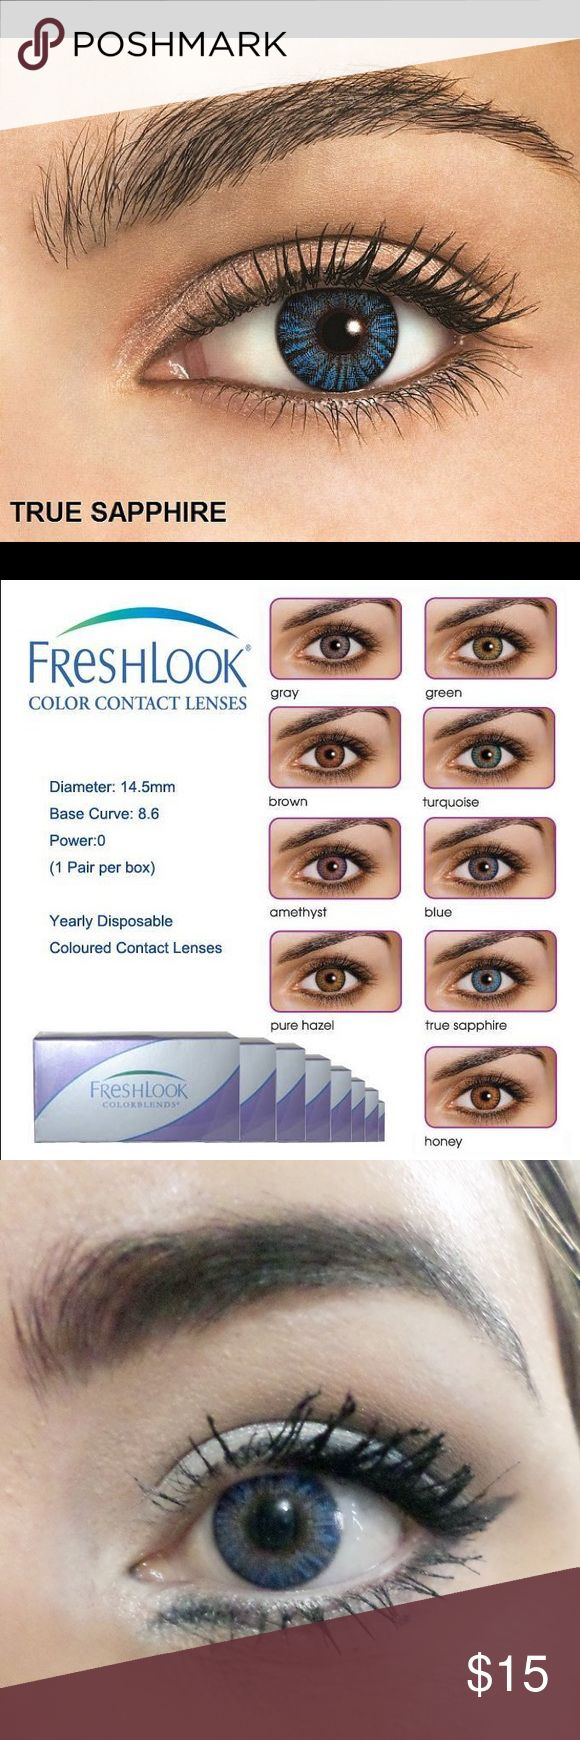 TRUE SAPPHIRE CONTACTS W FREE CASE Freshlook colorblends contacts w free case Accessories Glasses